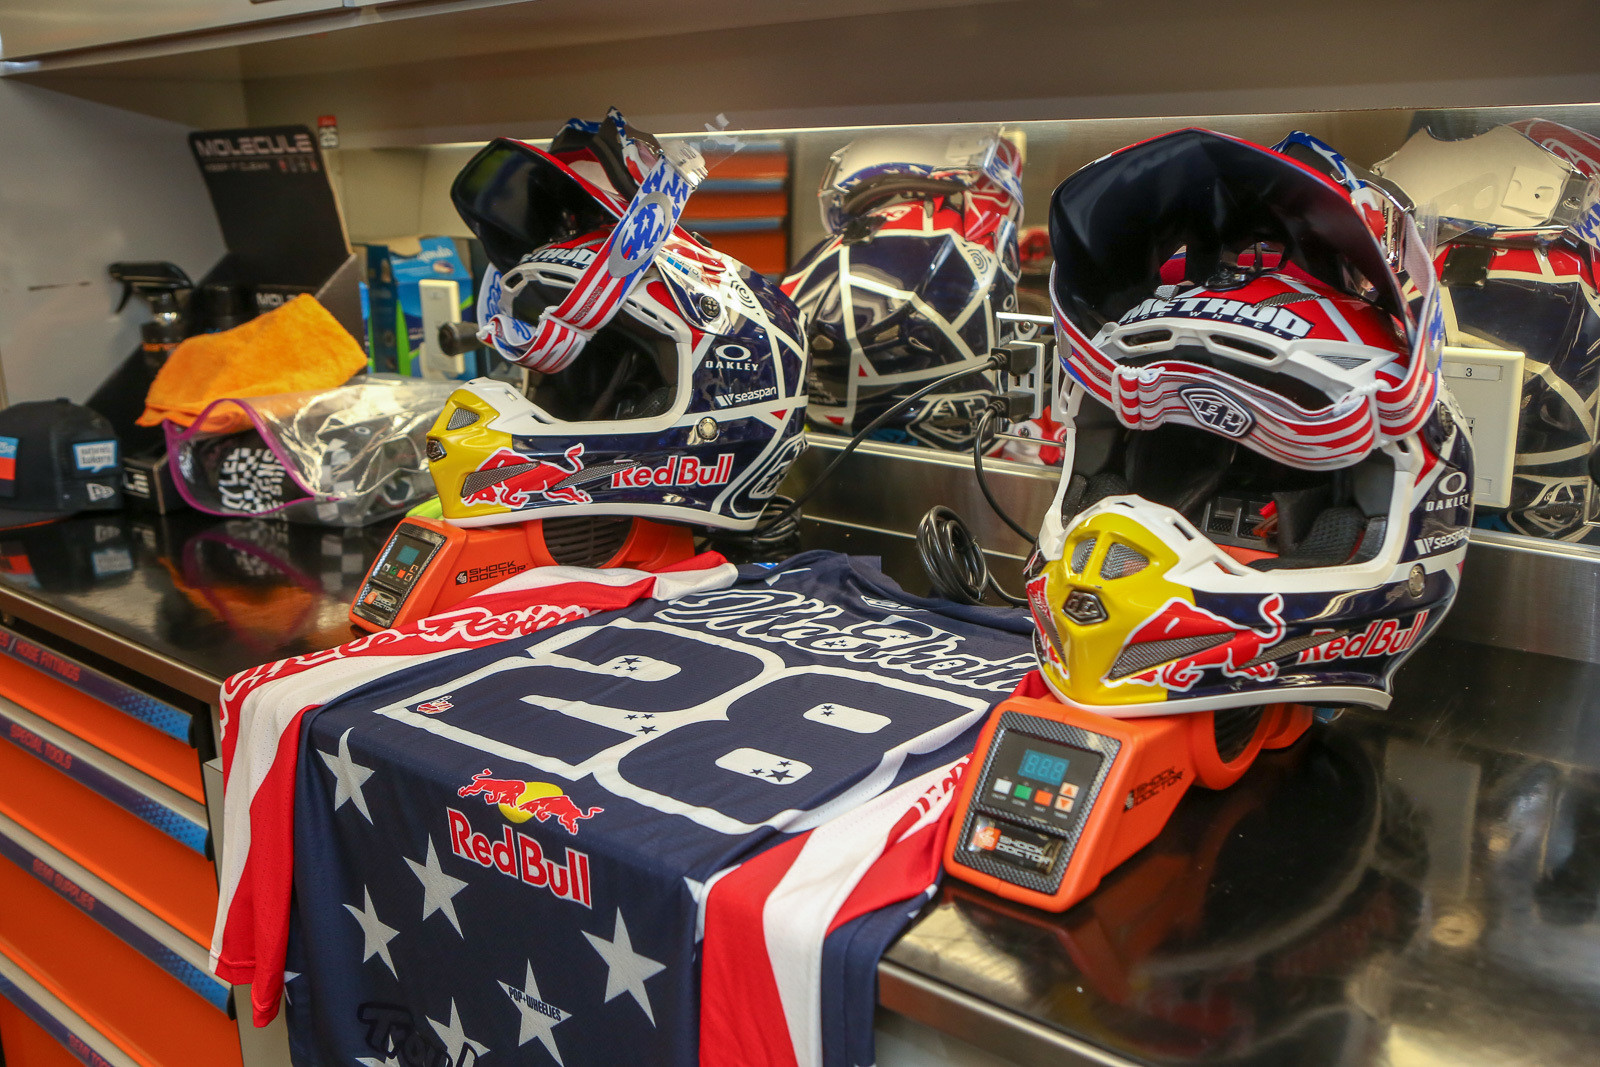 Shane McElrath and Alex Martin will be rocking red/white/blue and stars/stripes this weekend.